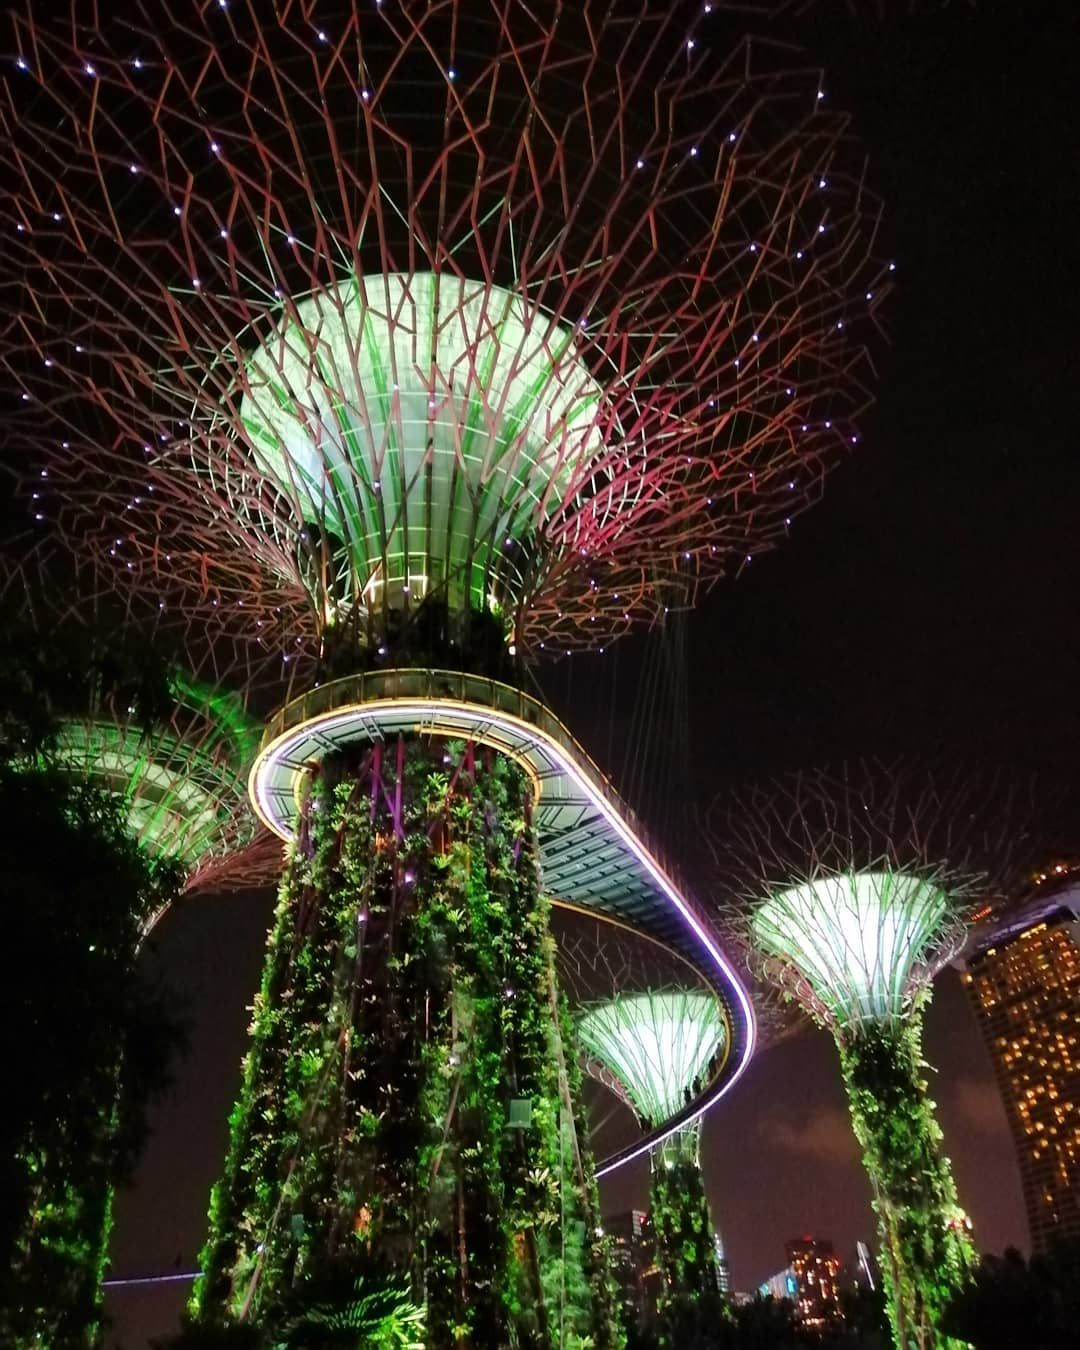 Nofilter Super Tree Grove At Night Supertreegrove Gardensbythebay Singapore Gardens By The Bay Outdoor Decor Outdoor